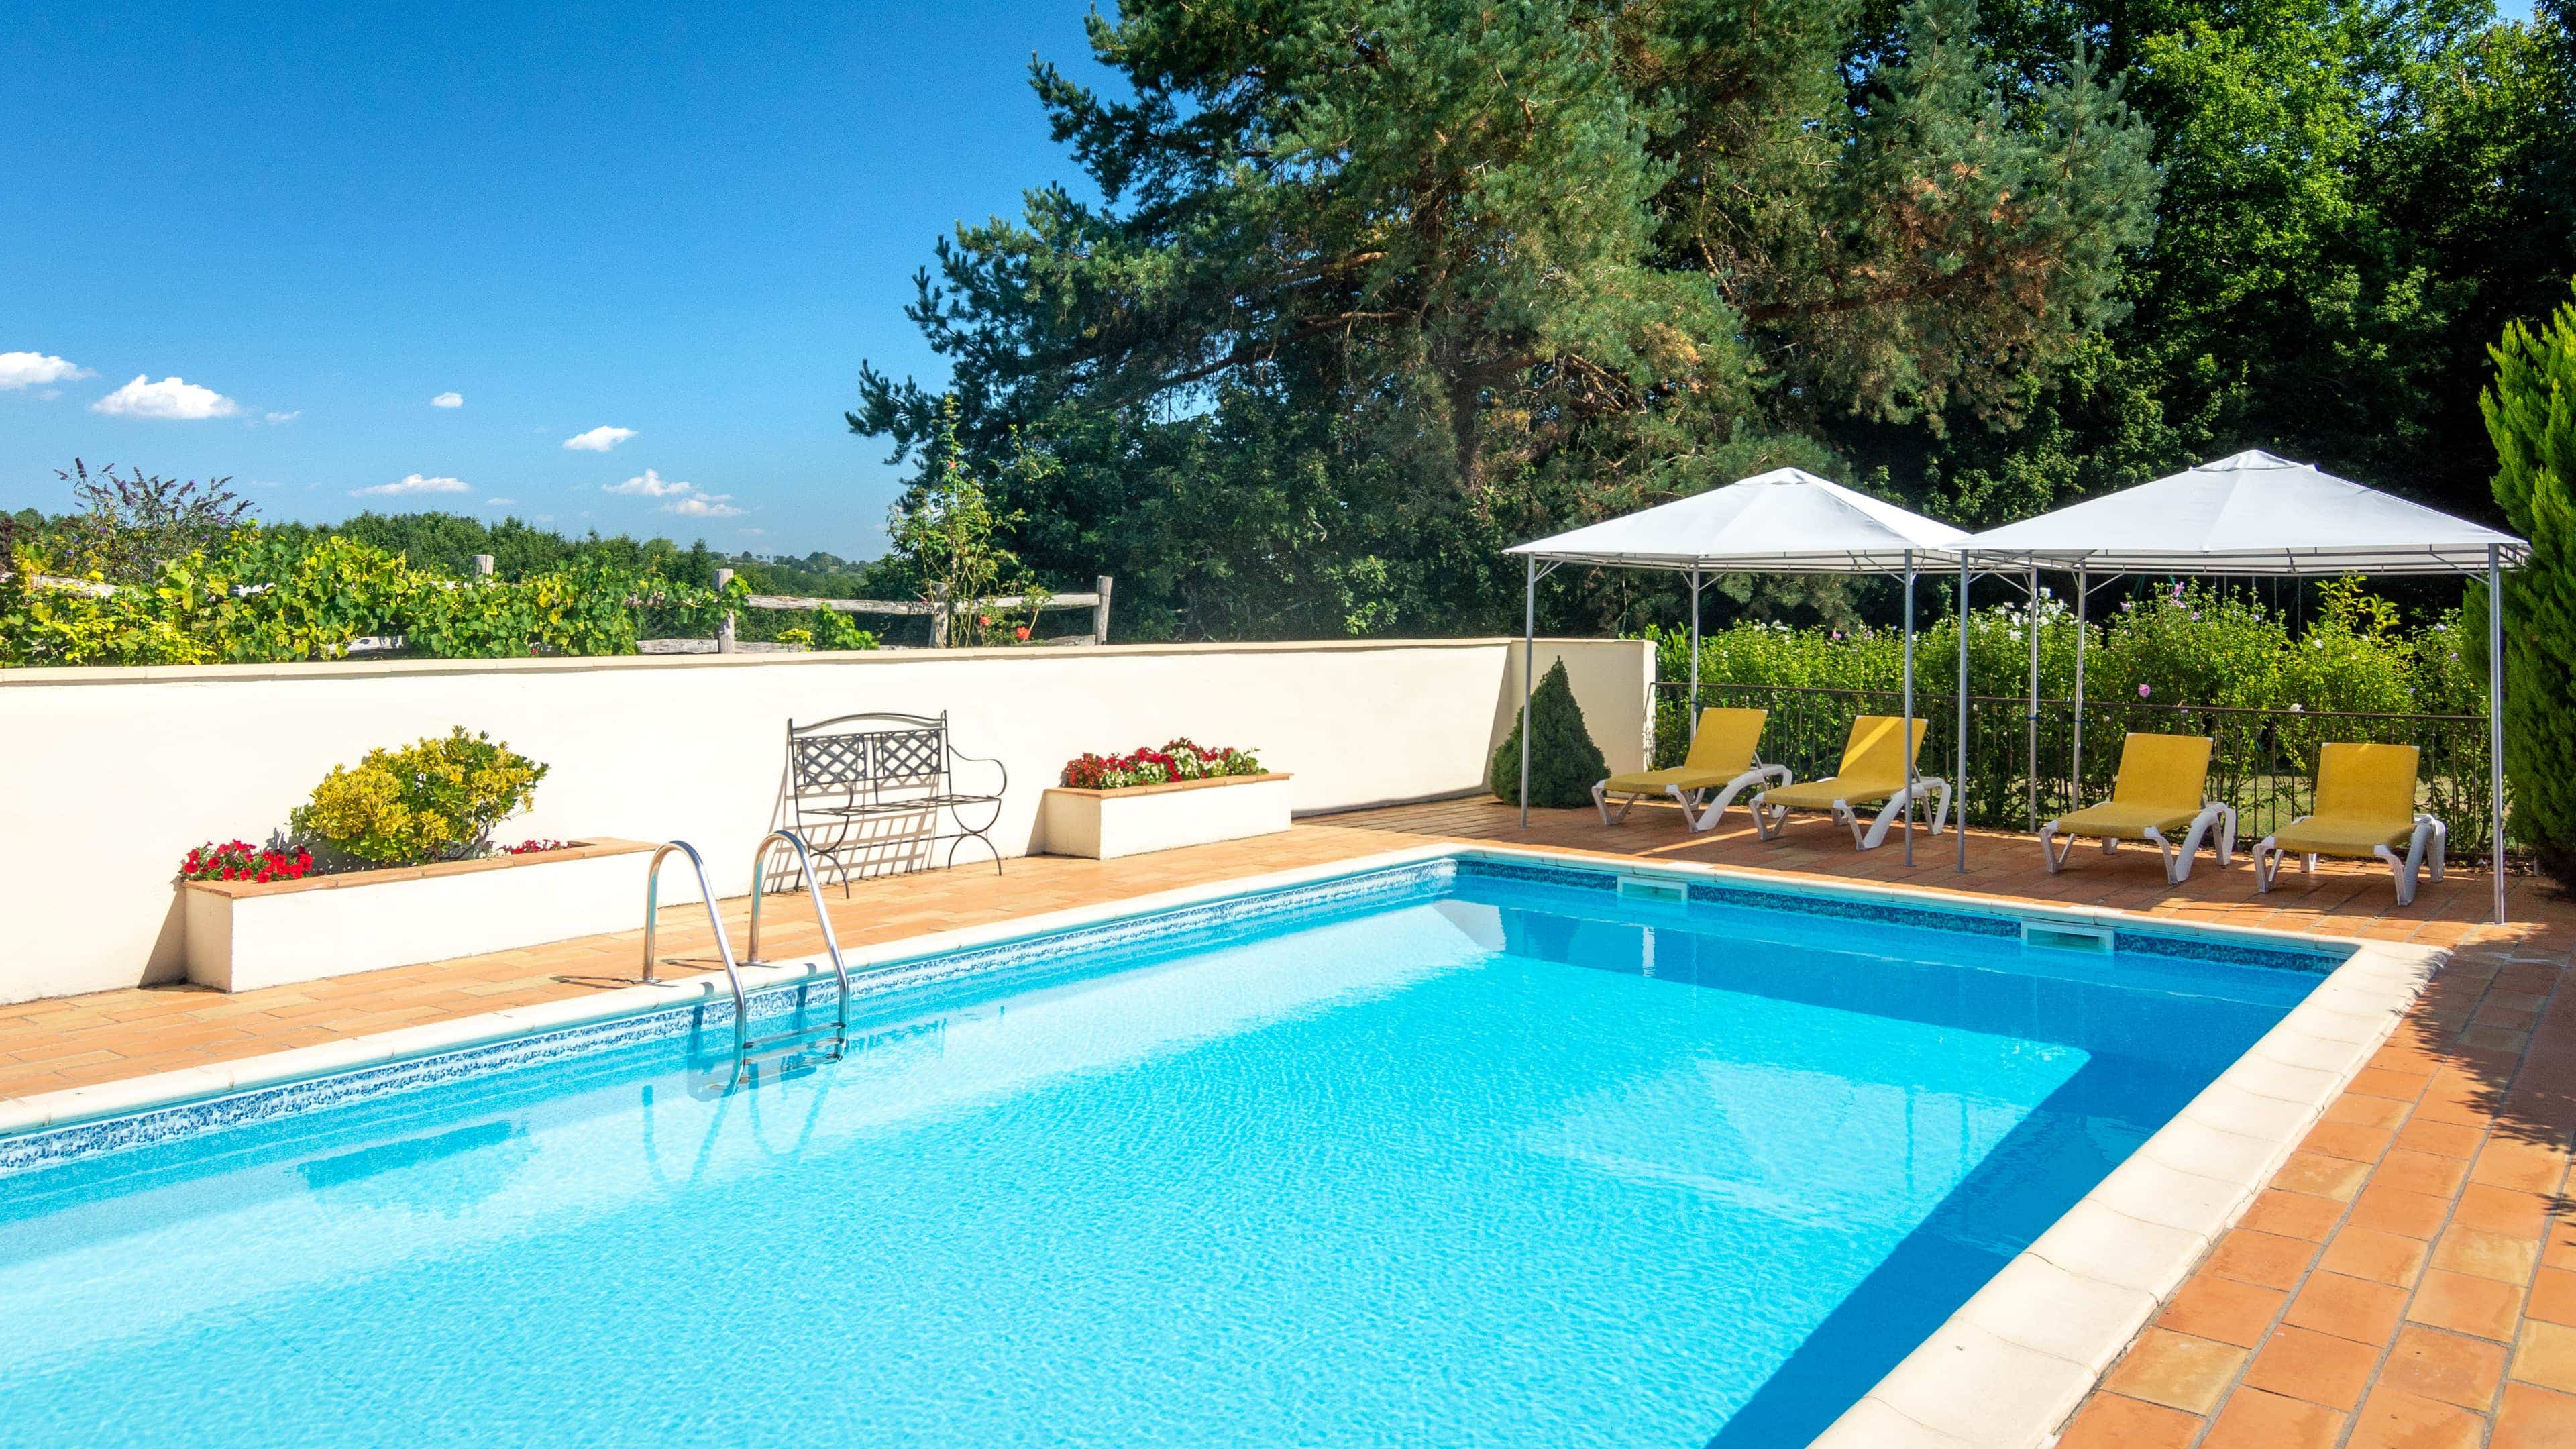 La Borie Gites   Gites and Holiday Home with Swimming Pool in the Dordogne & Lot, France